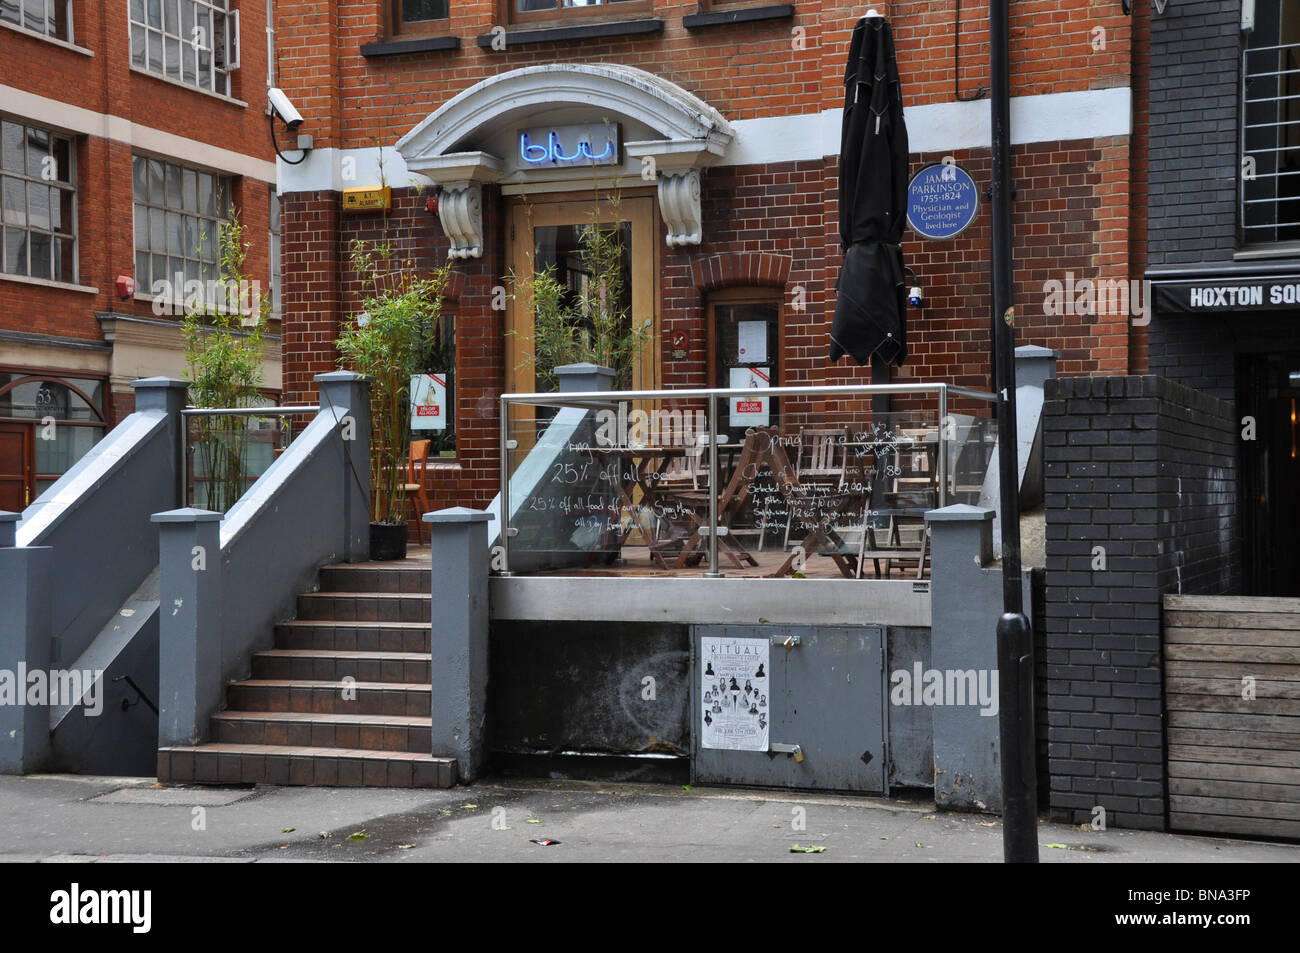 BLUU A Club in Hoxton Square Hackney London England UK - Stock Image